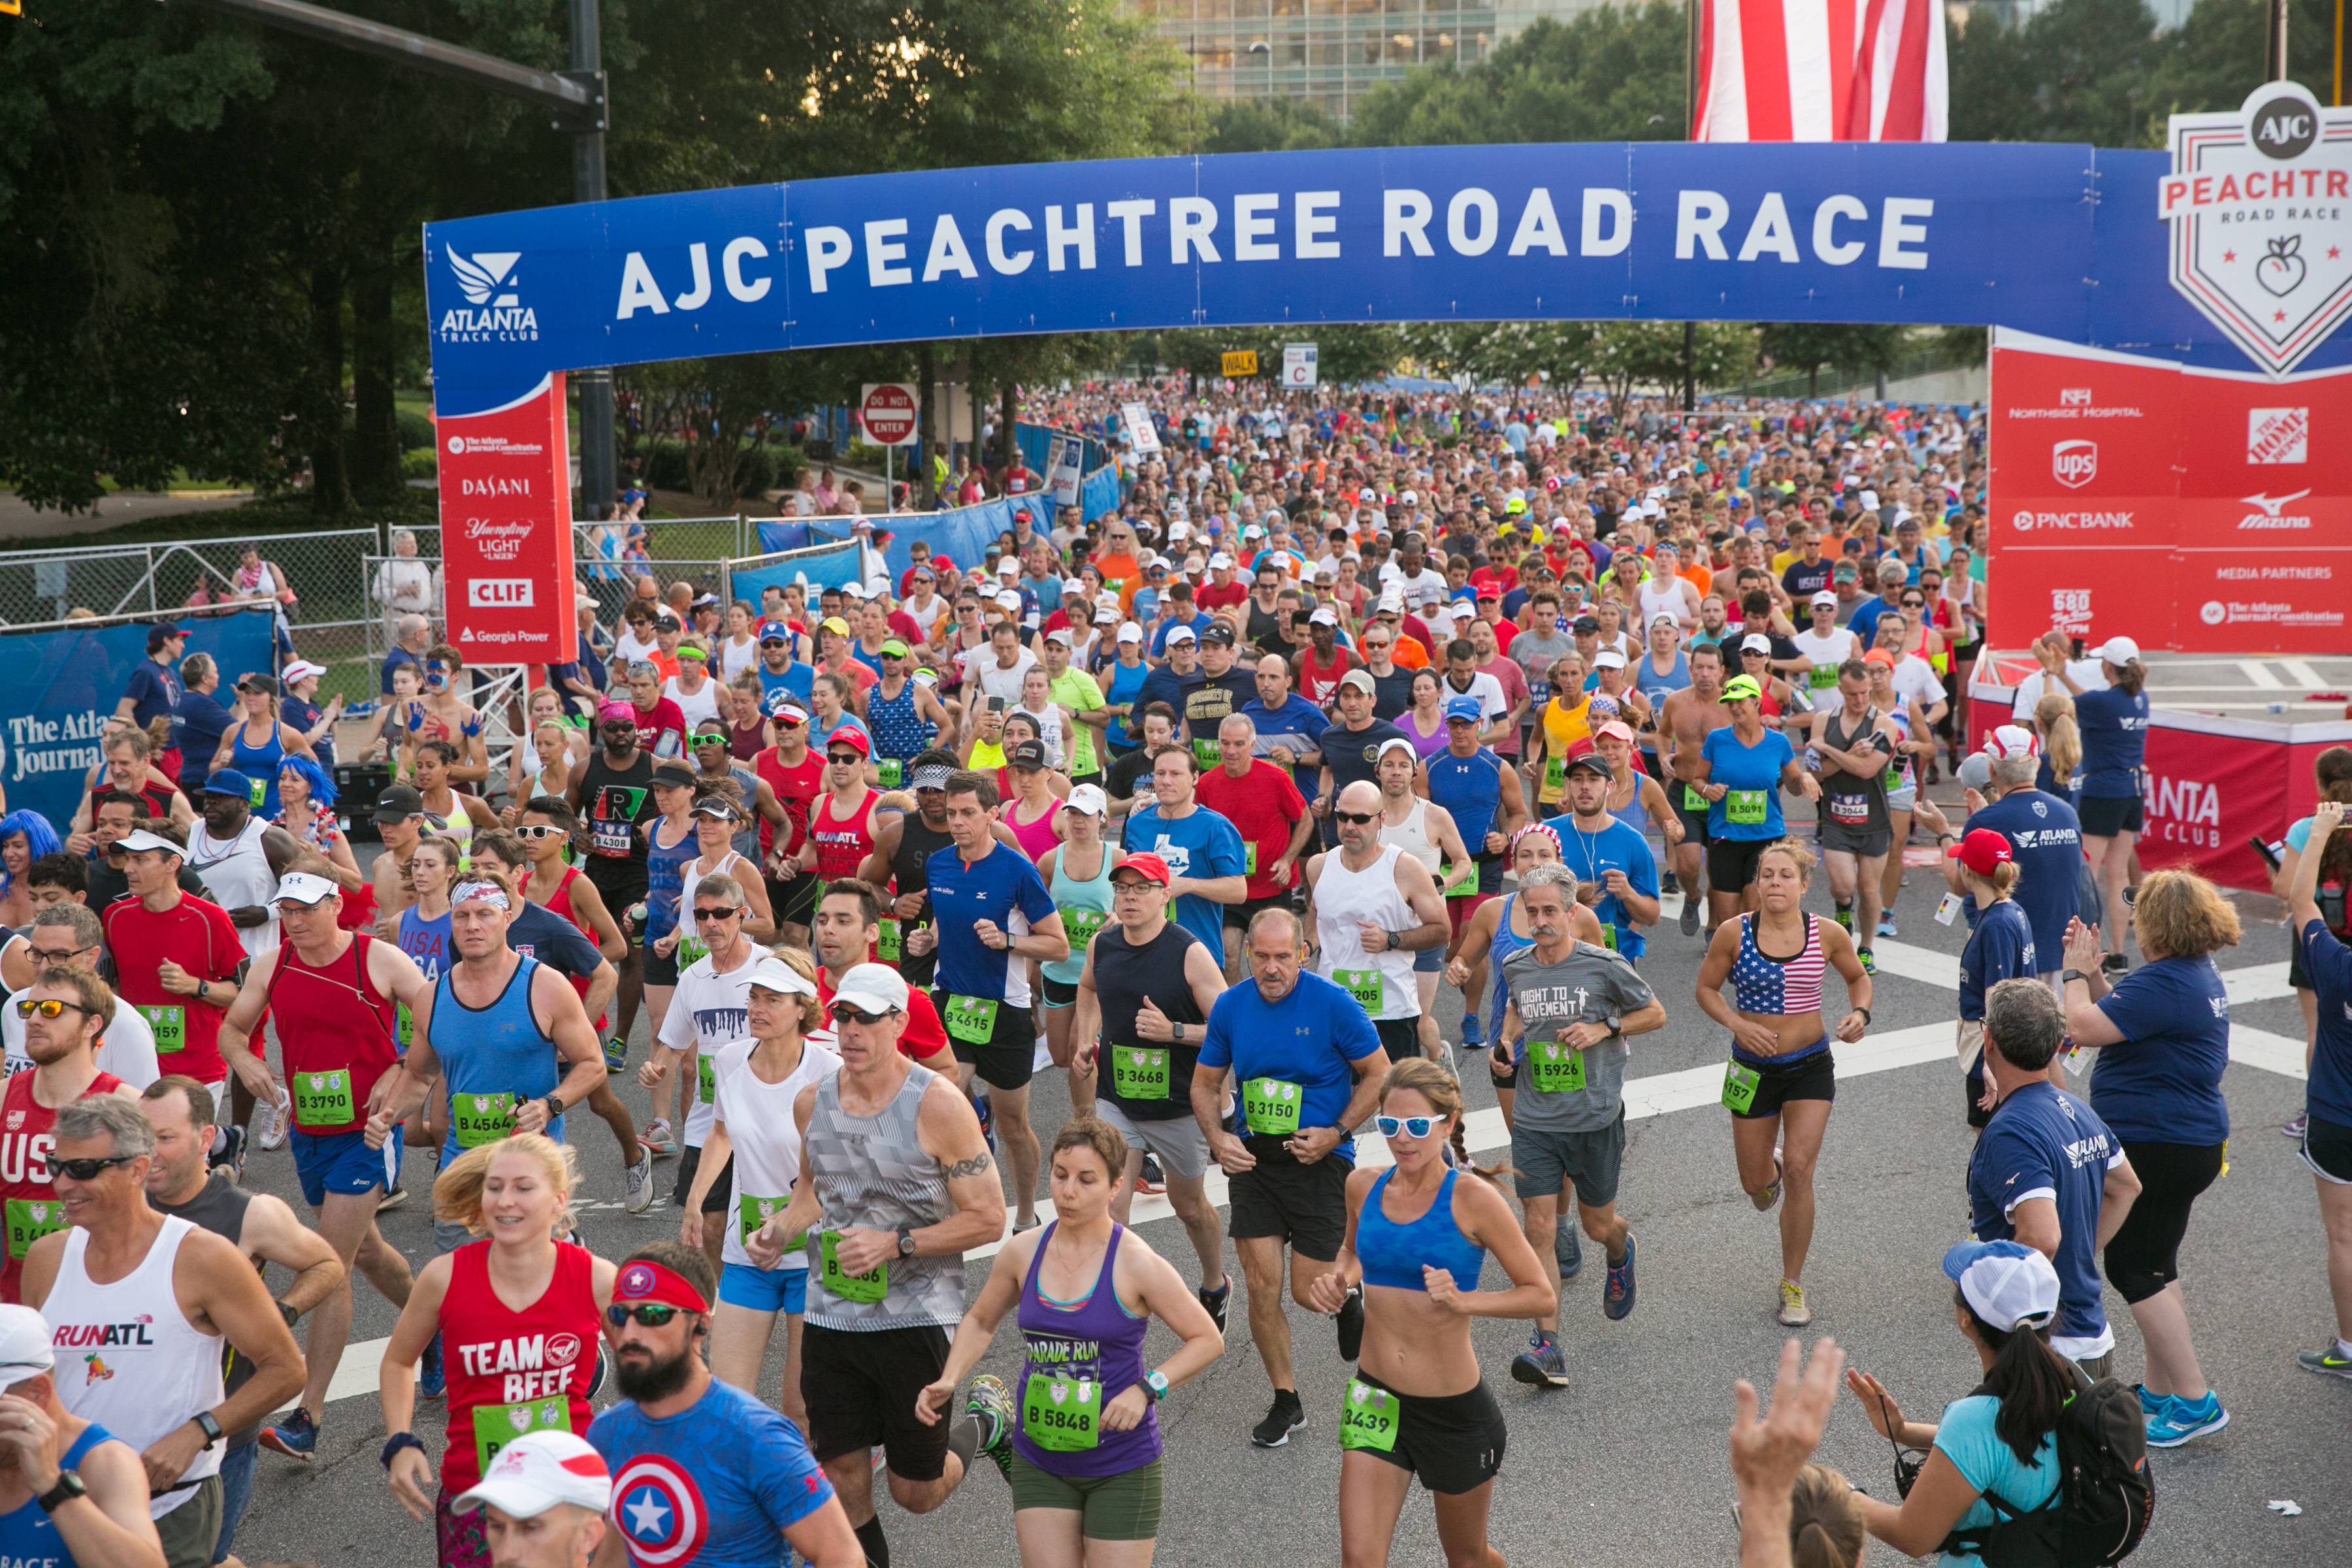 Registration for 50th AJC Peachtree Road Race Friday